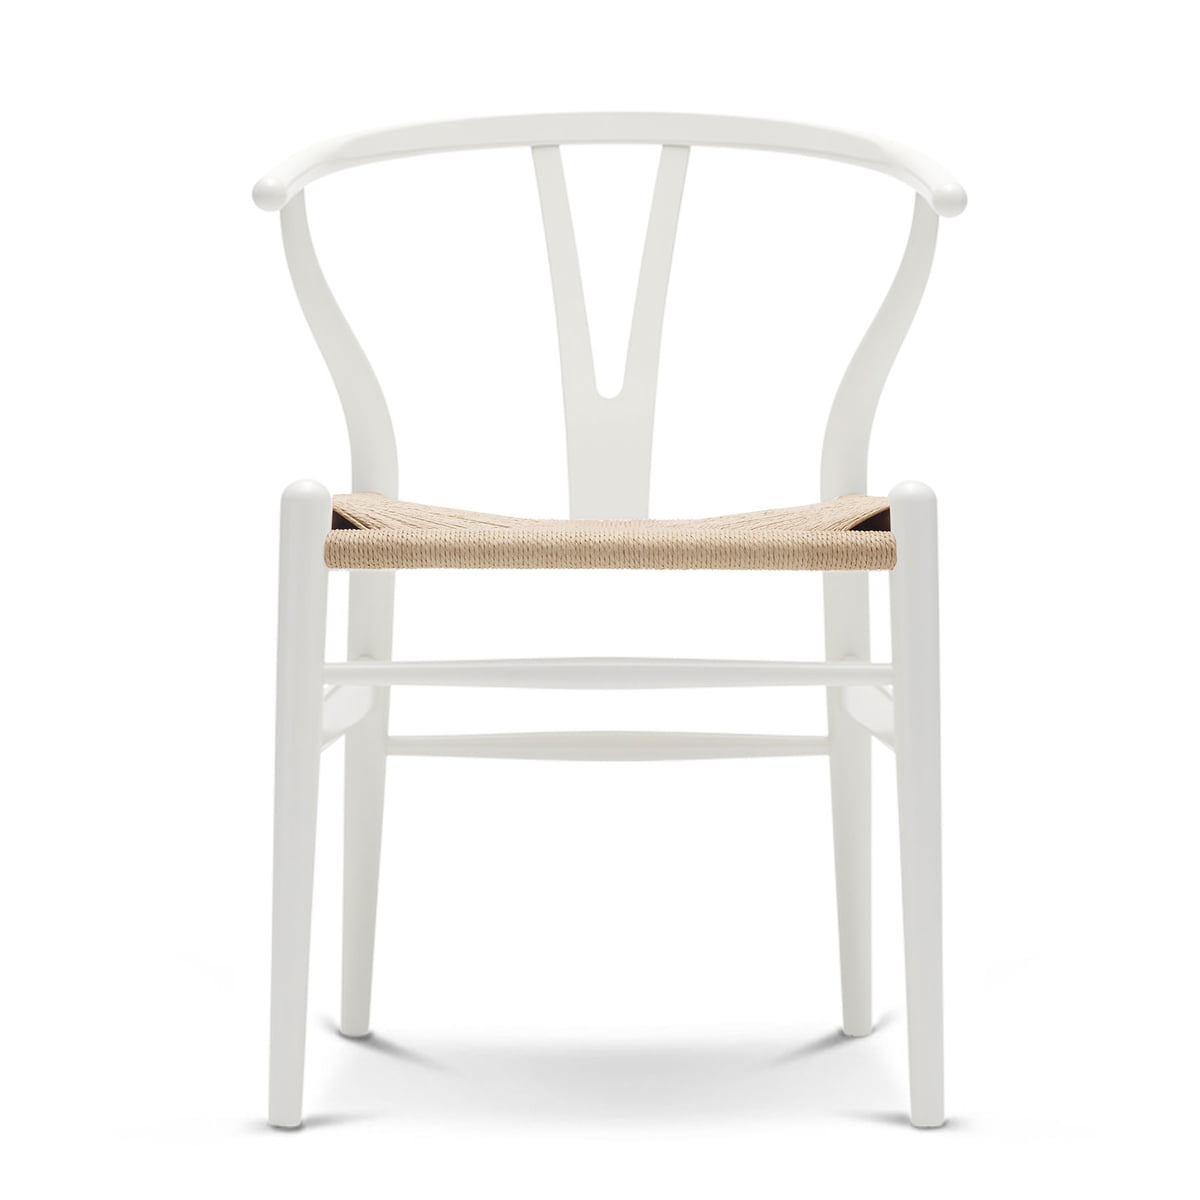 Carl Hansen - CH24 Wishbone Chair, Buche weiß / Naturgeflecht